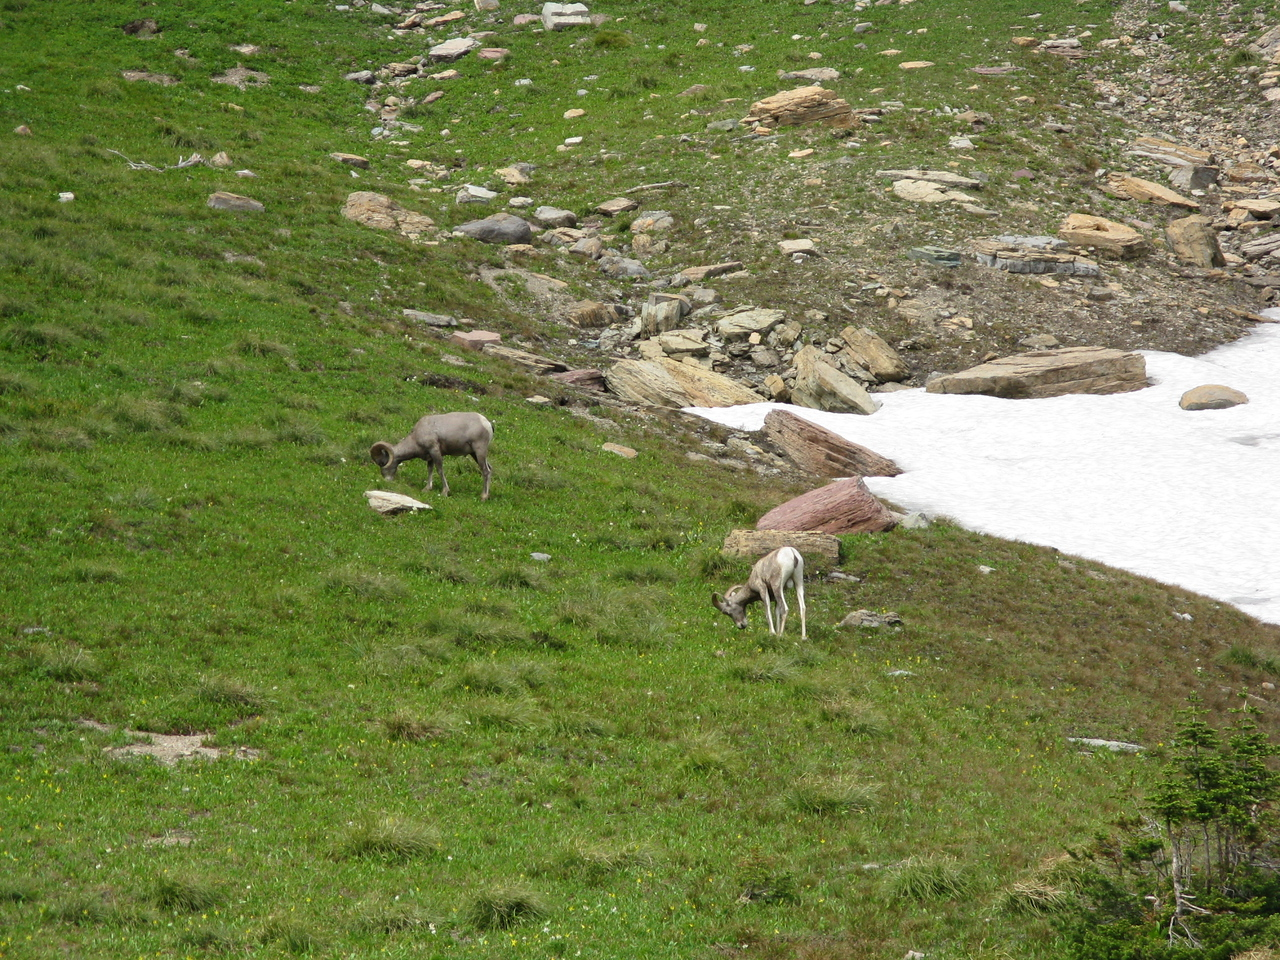 Just east of Logan Pass, we found Bighorn Sheep grazing in the meadow.